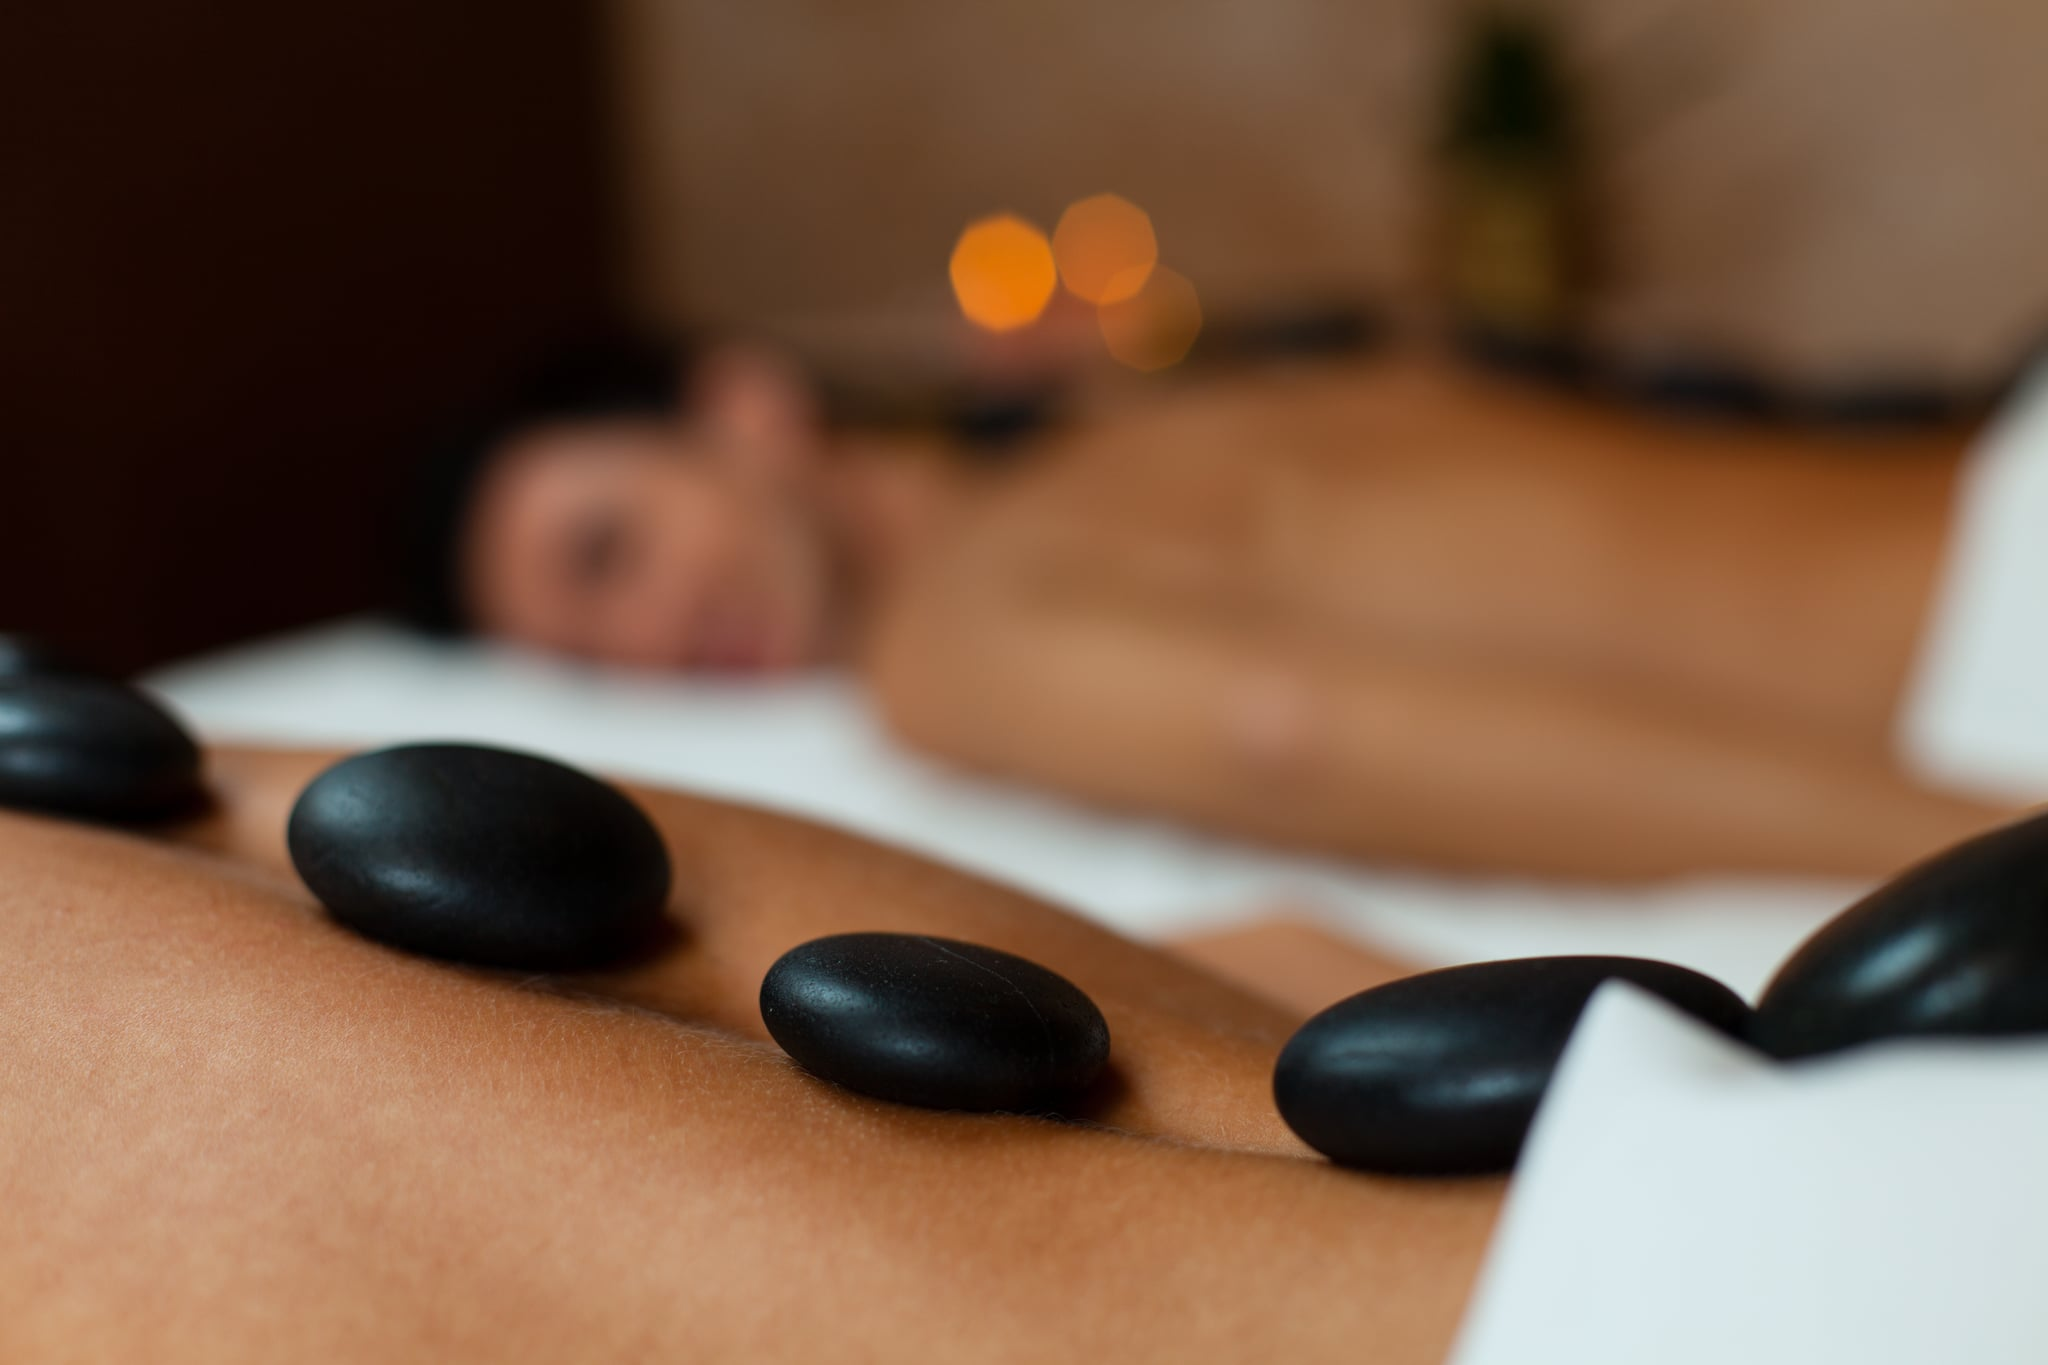 How Getting a Couple's Massage With My Partner Completely Changed Our Relationship